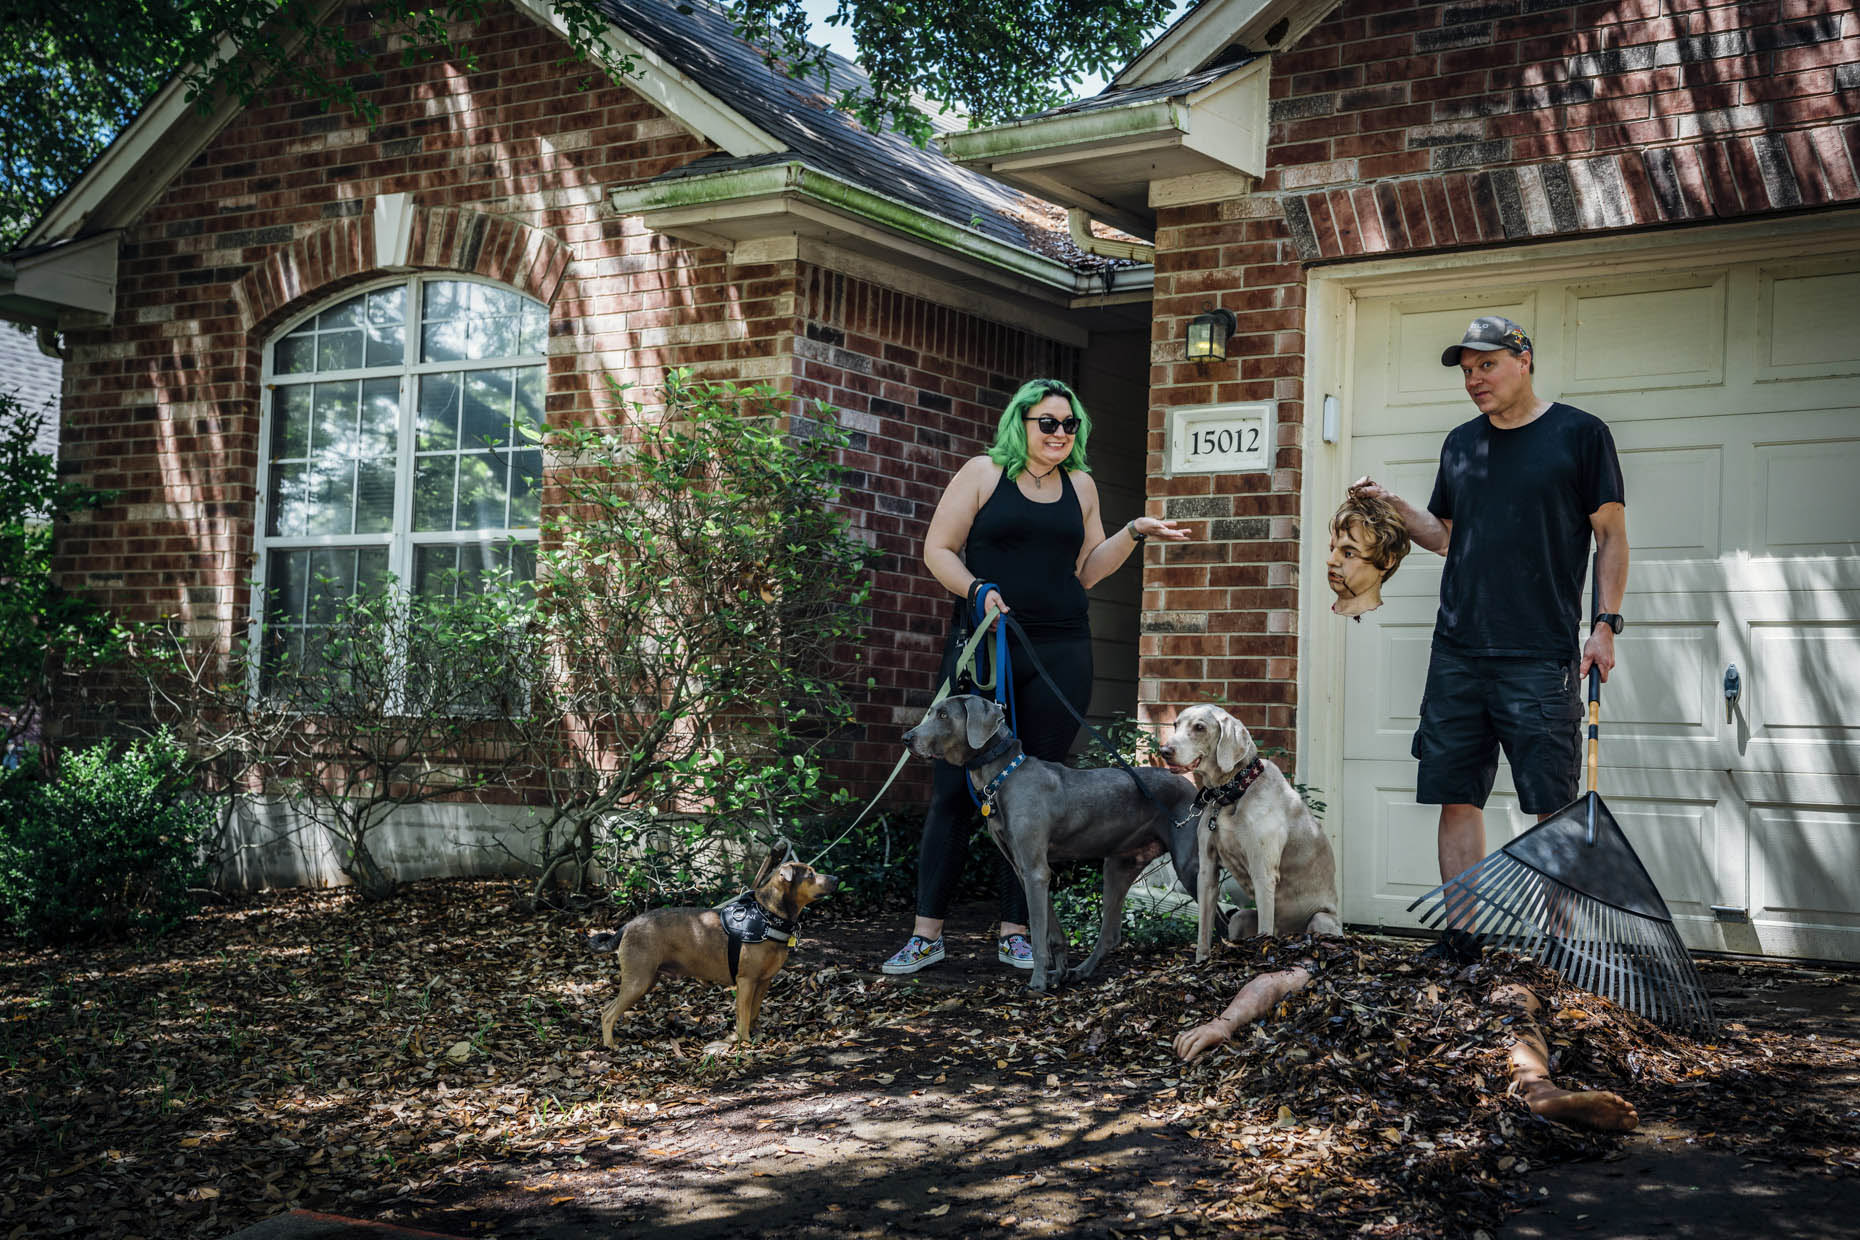 Woman with green hair holding leashes of three dogs next to man holding human head and rake in front of pile of leaves with leg and arm in front of house